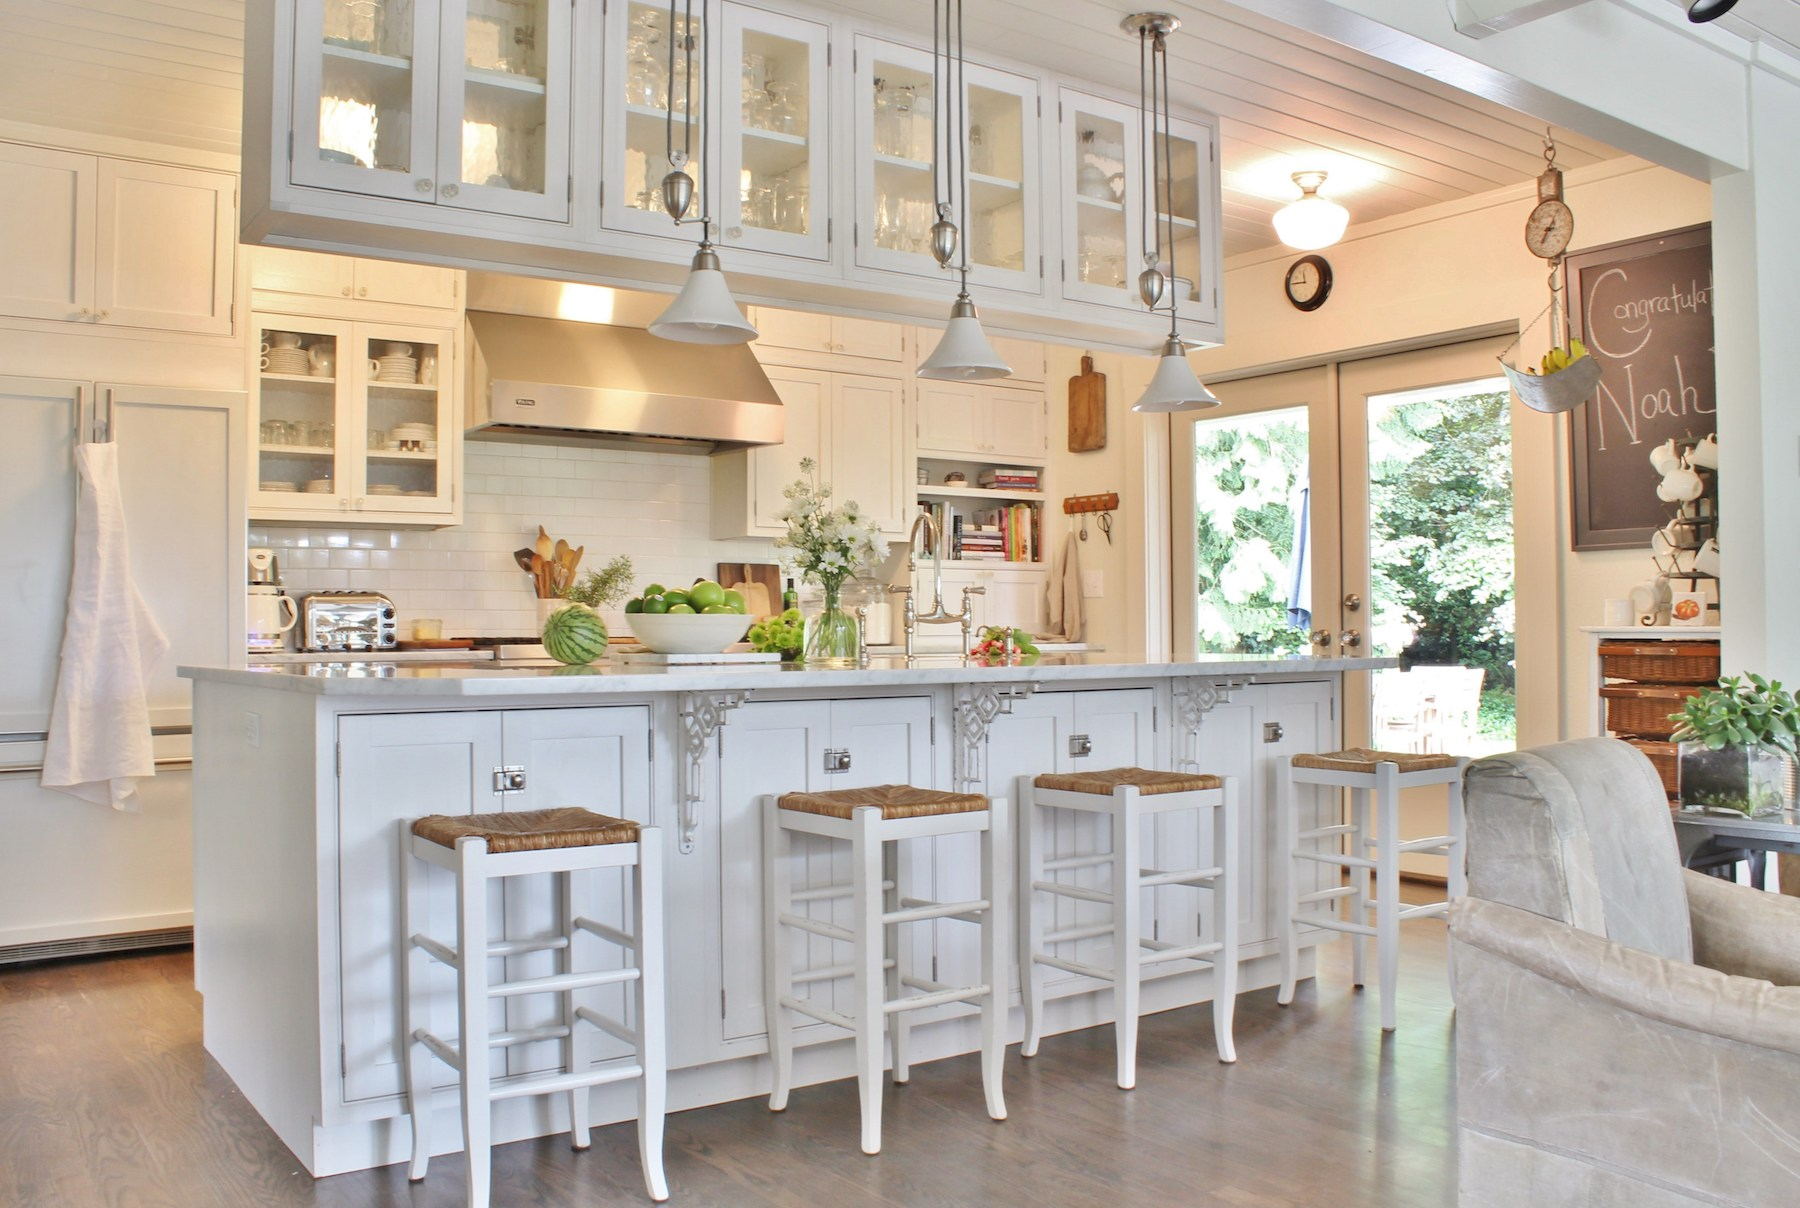 Kitchen Flooring Trends 2019 Houzz trends report beautiful kitchen & Hardwood Flooring Is No Longer the Top Choice for Kitchens | Real Simple